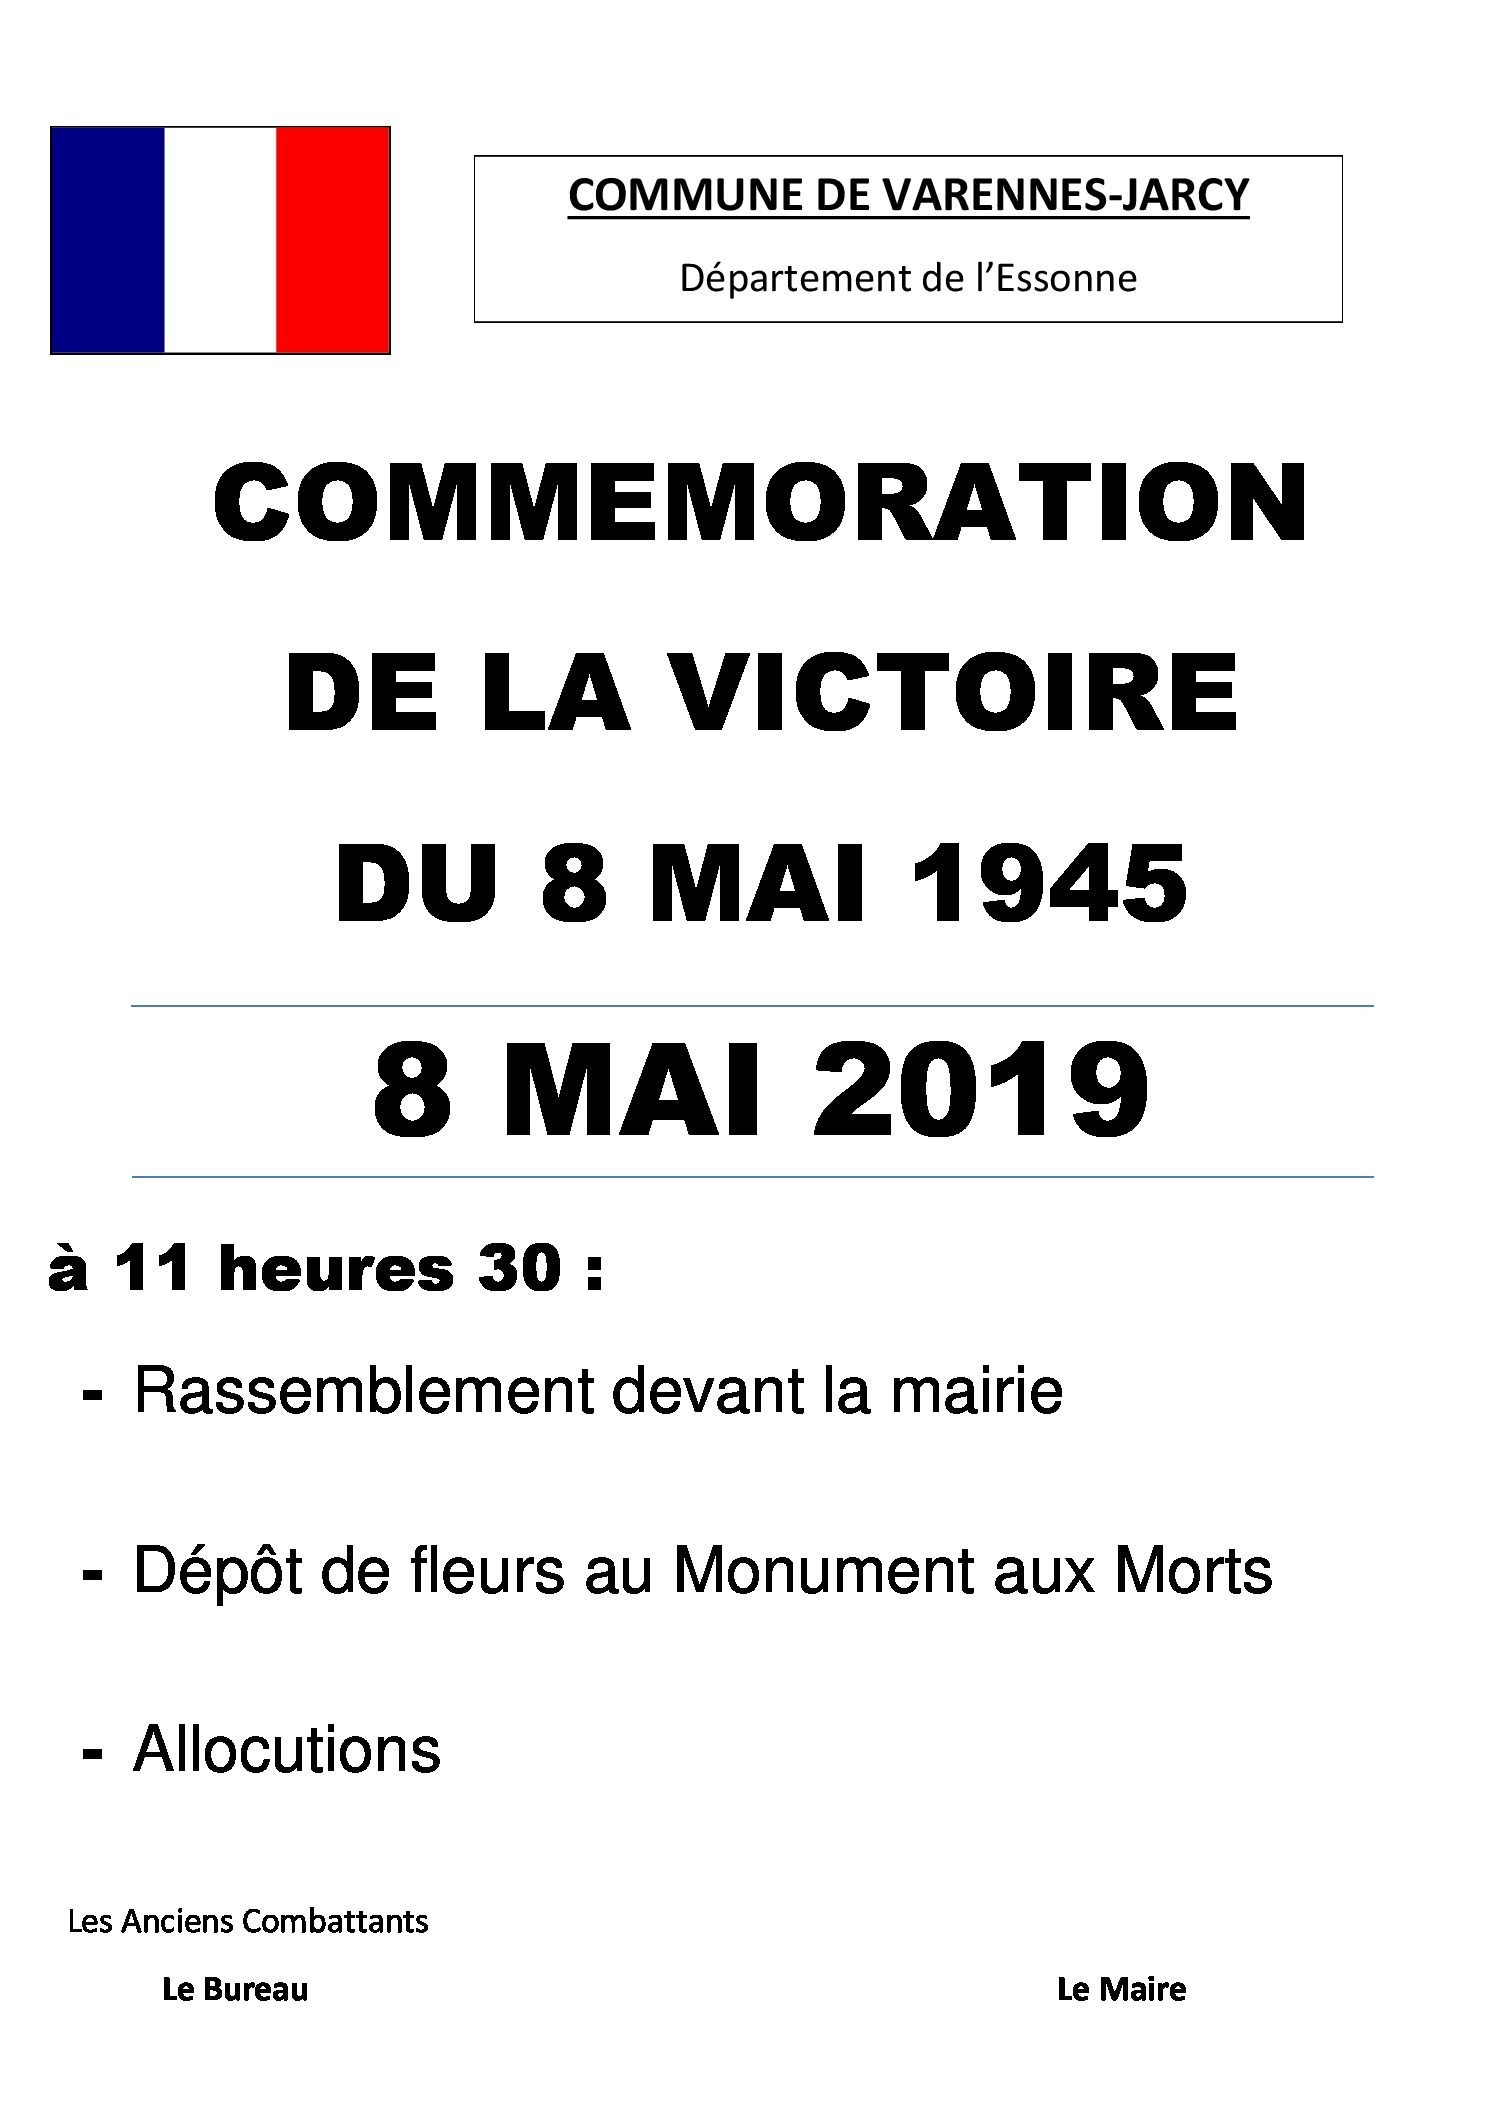 thumbnail of affiche COMMEMORATION 8 maidocx